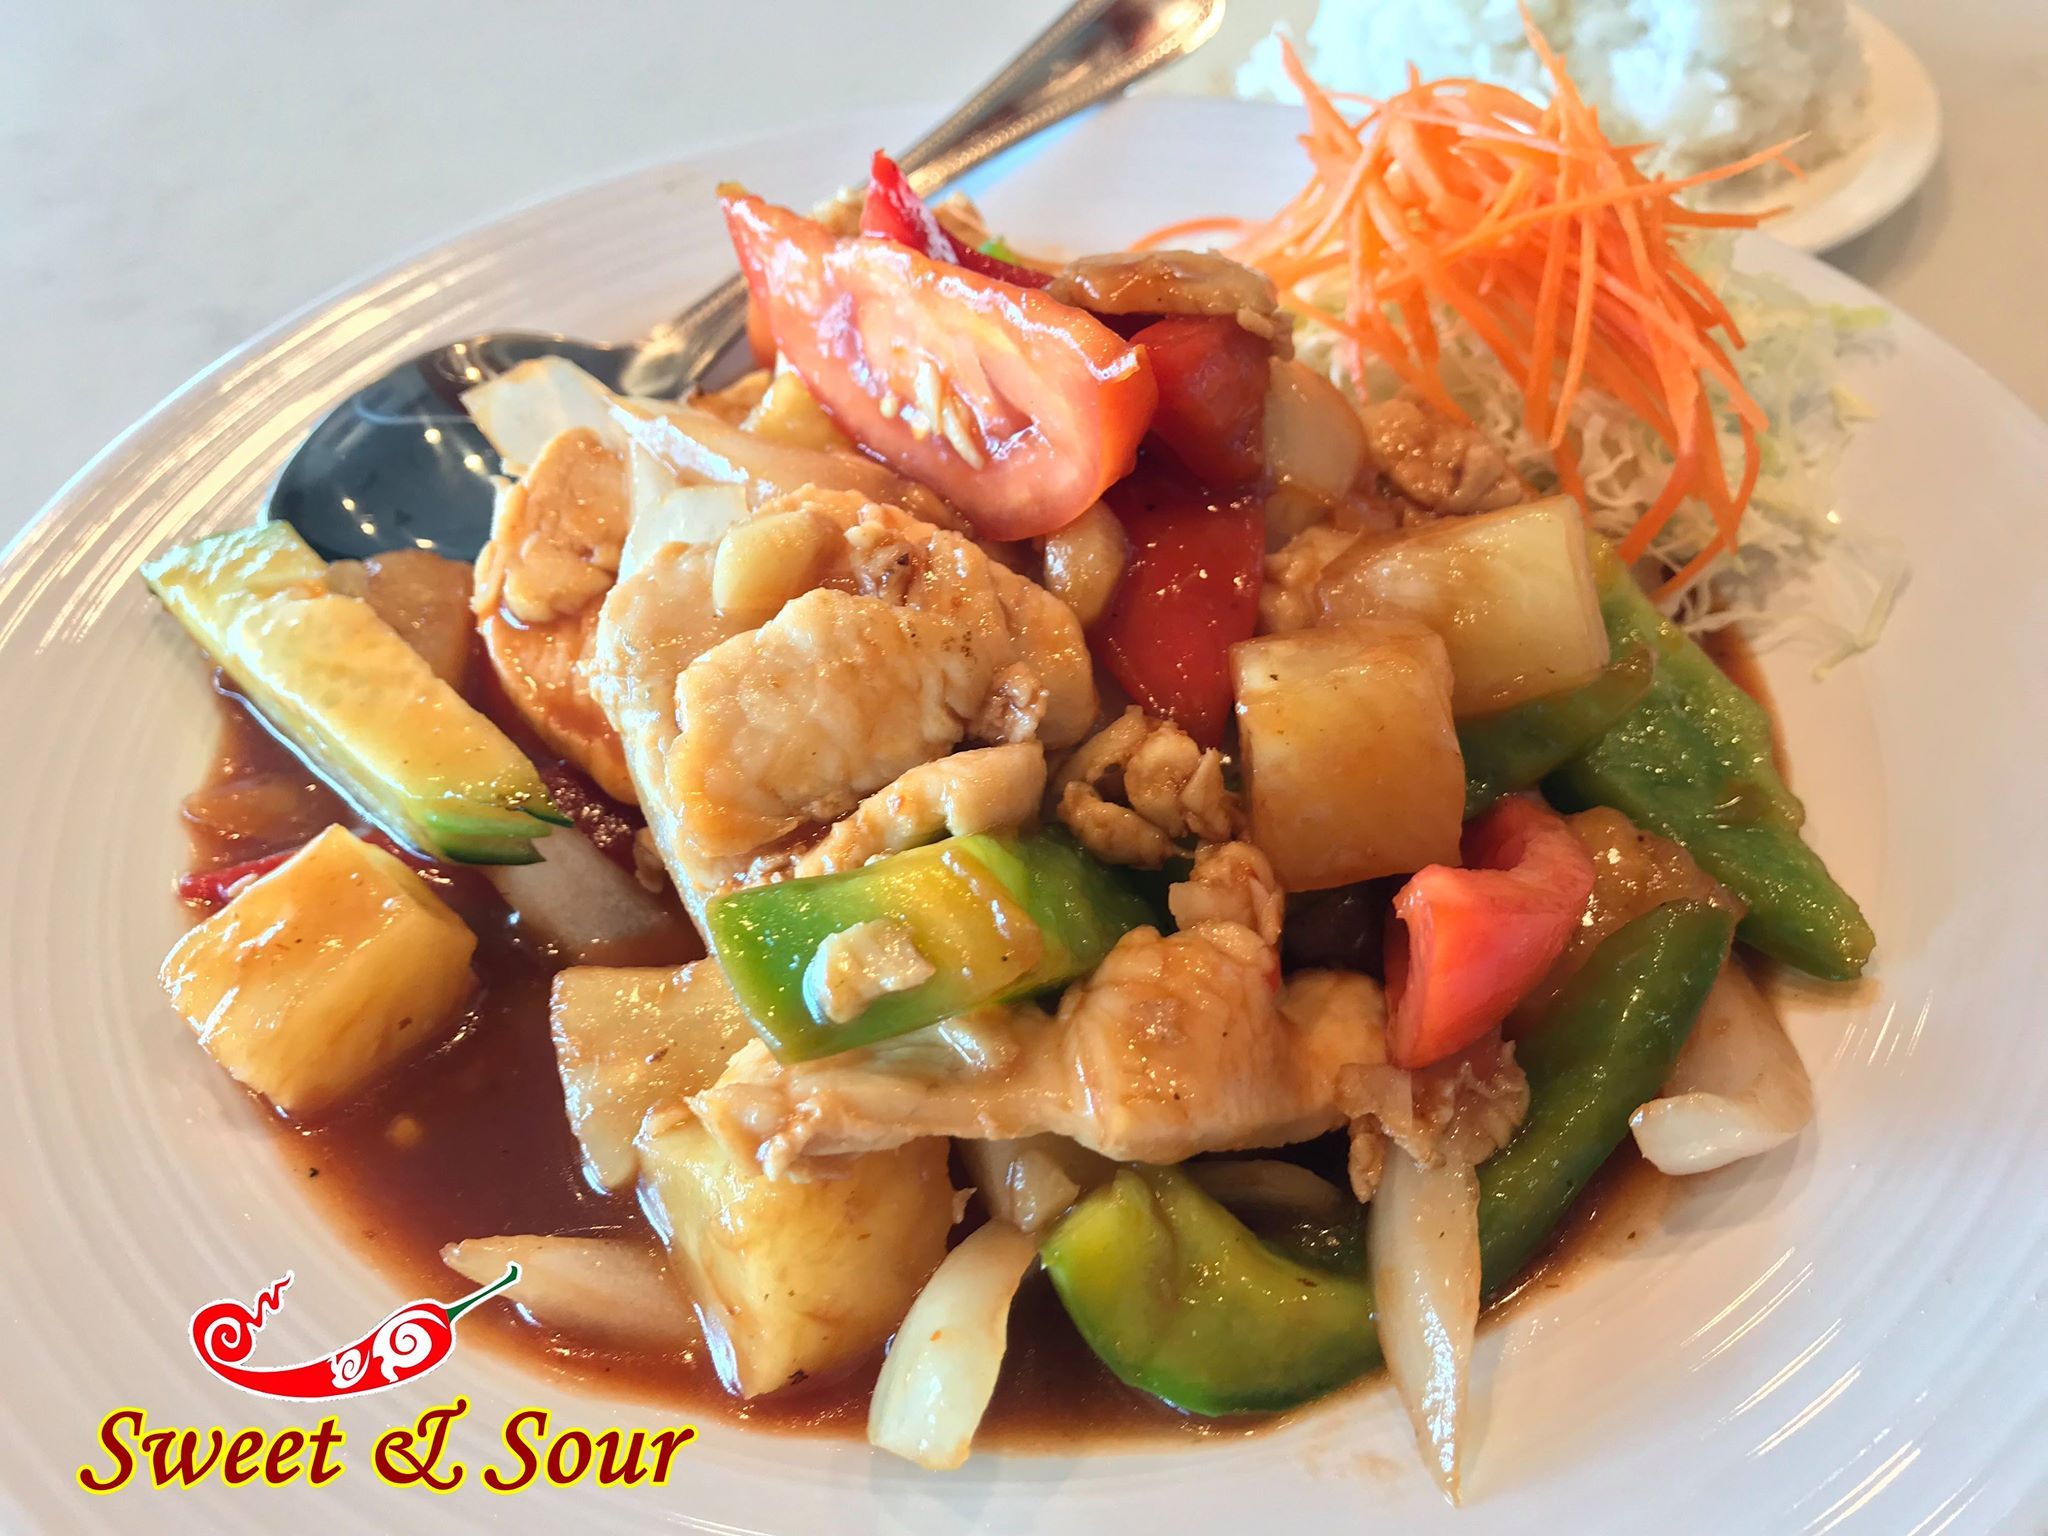 Sweet&Sour Stir-Fry (Catering)